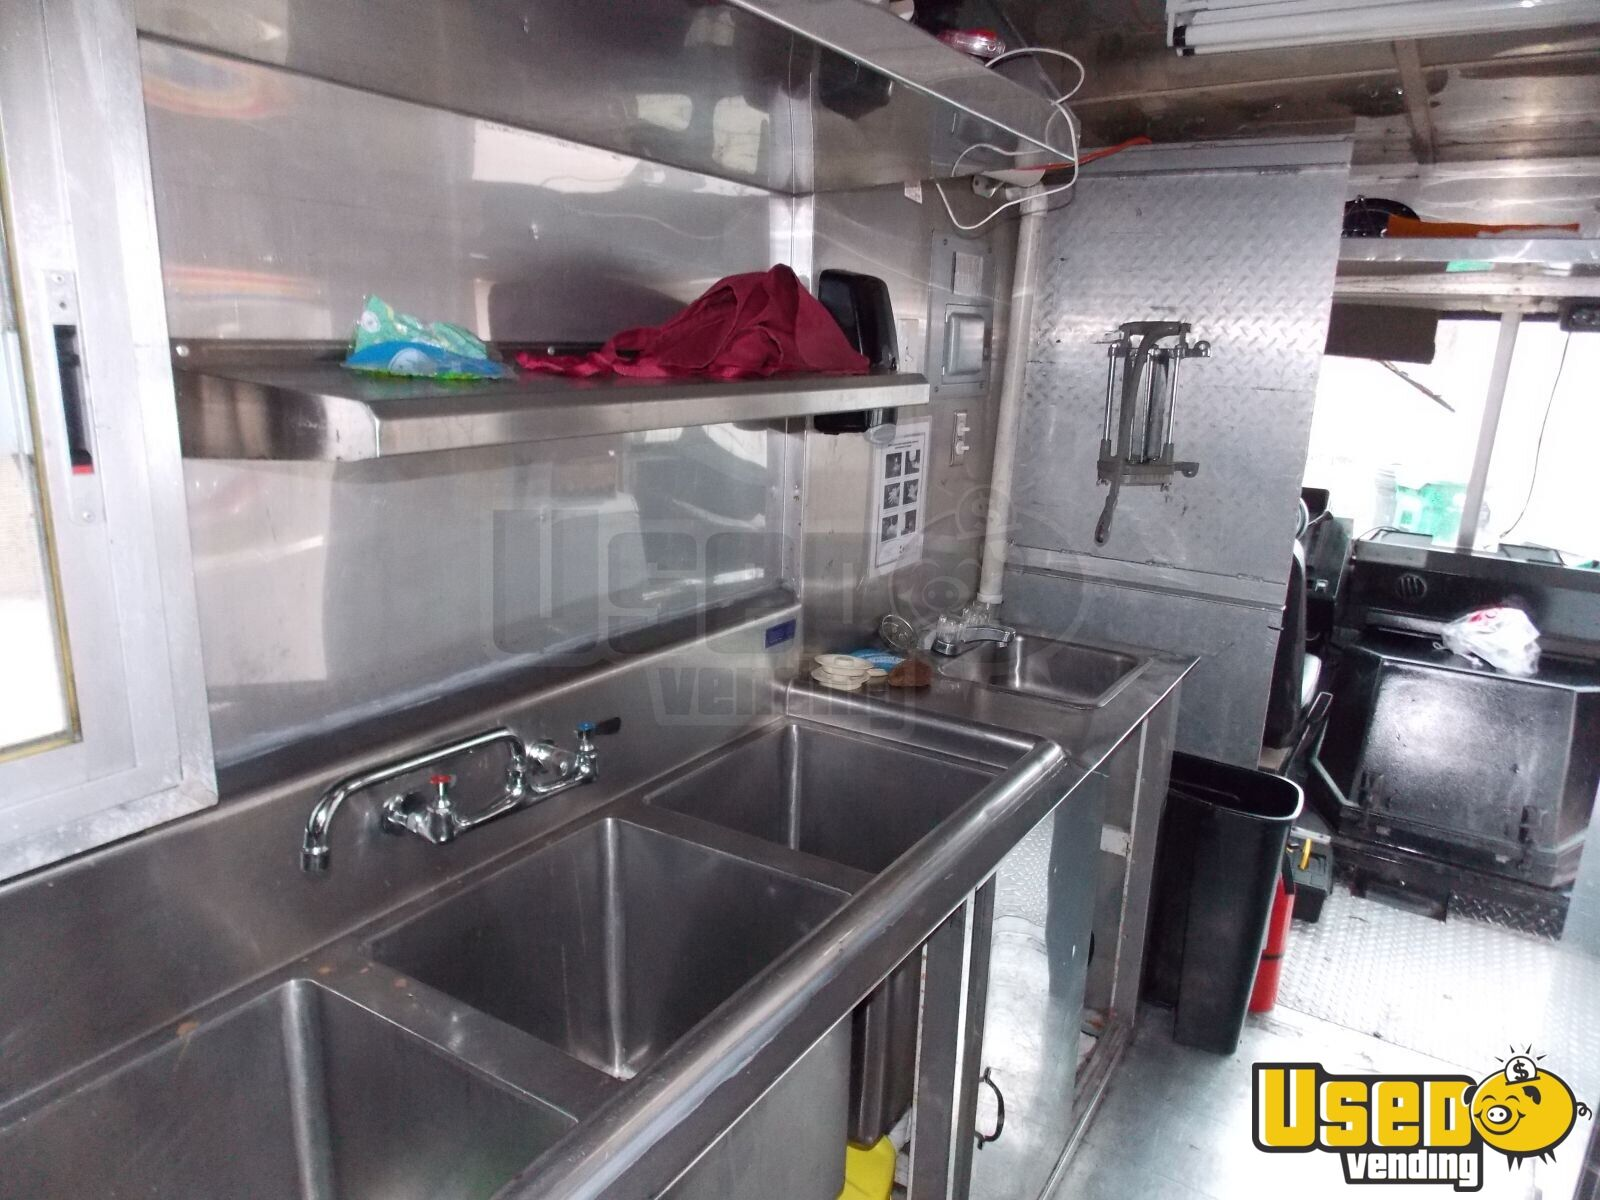 Chevy Food Truck for Sale in Texas - 9